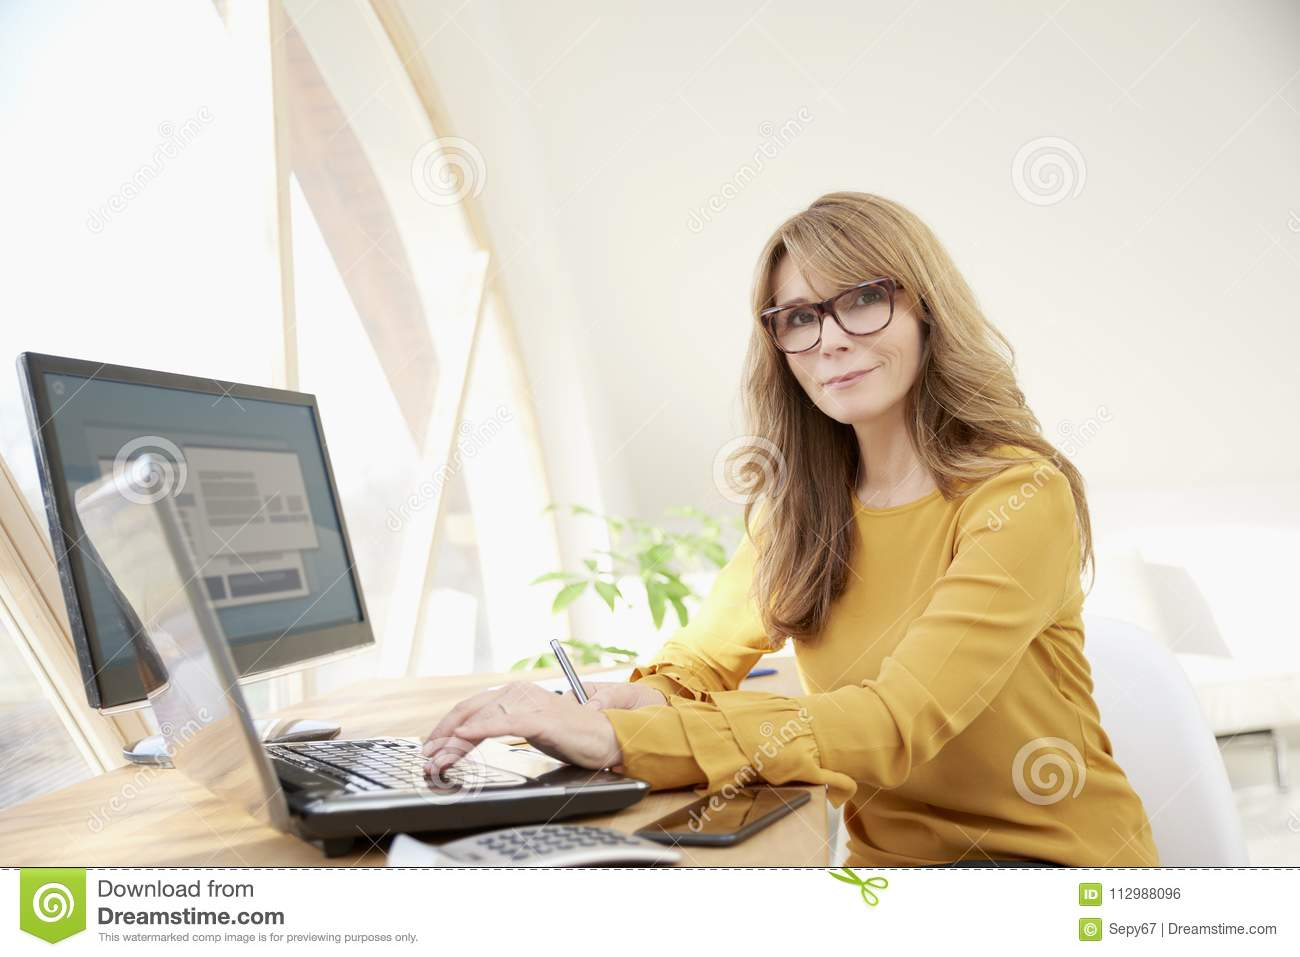 Investment advisor businesswoman with laptop